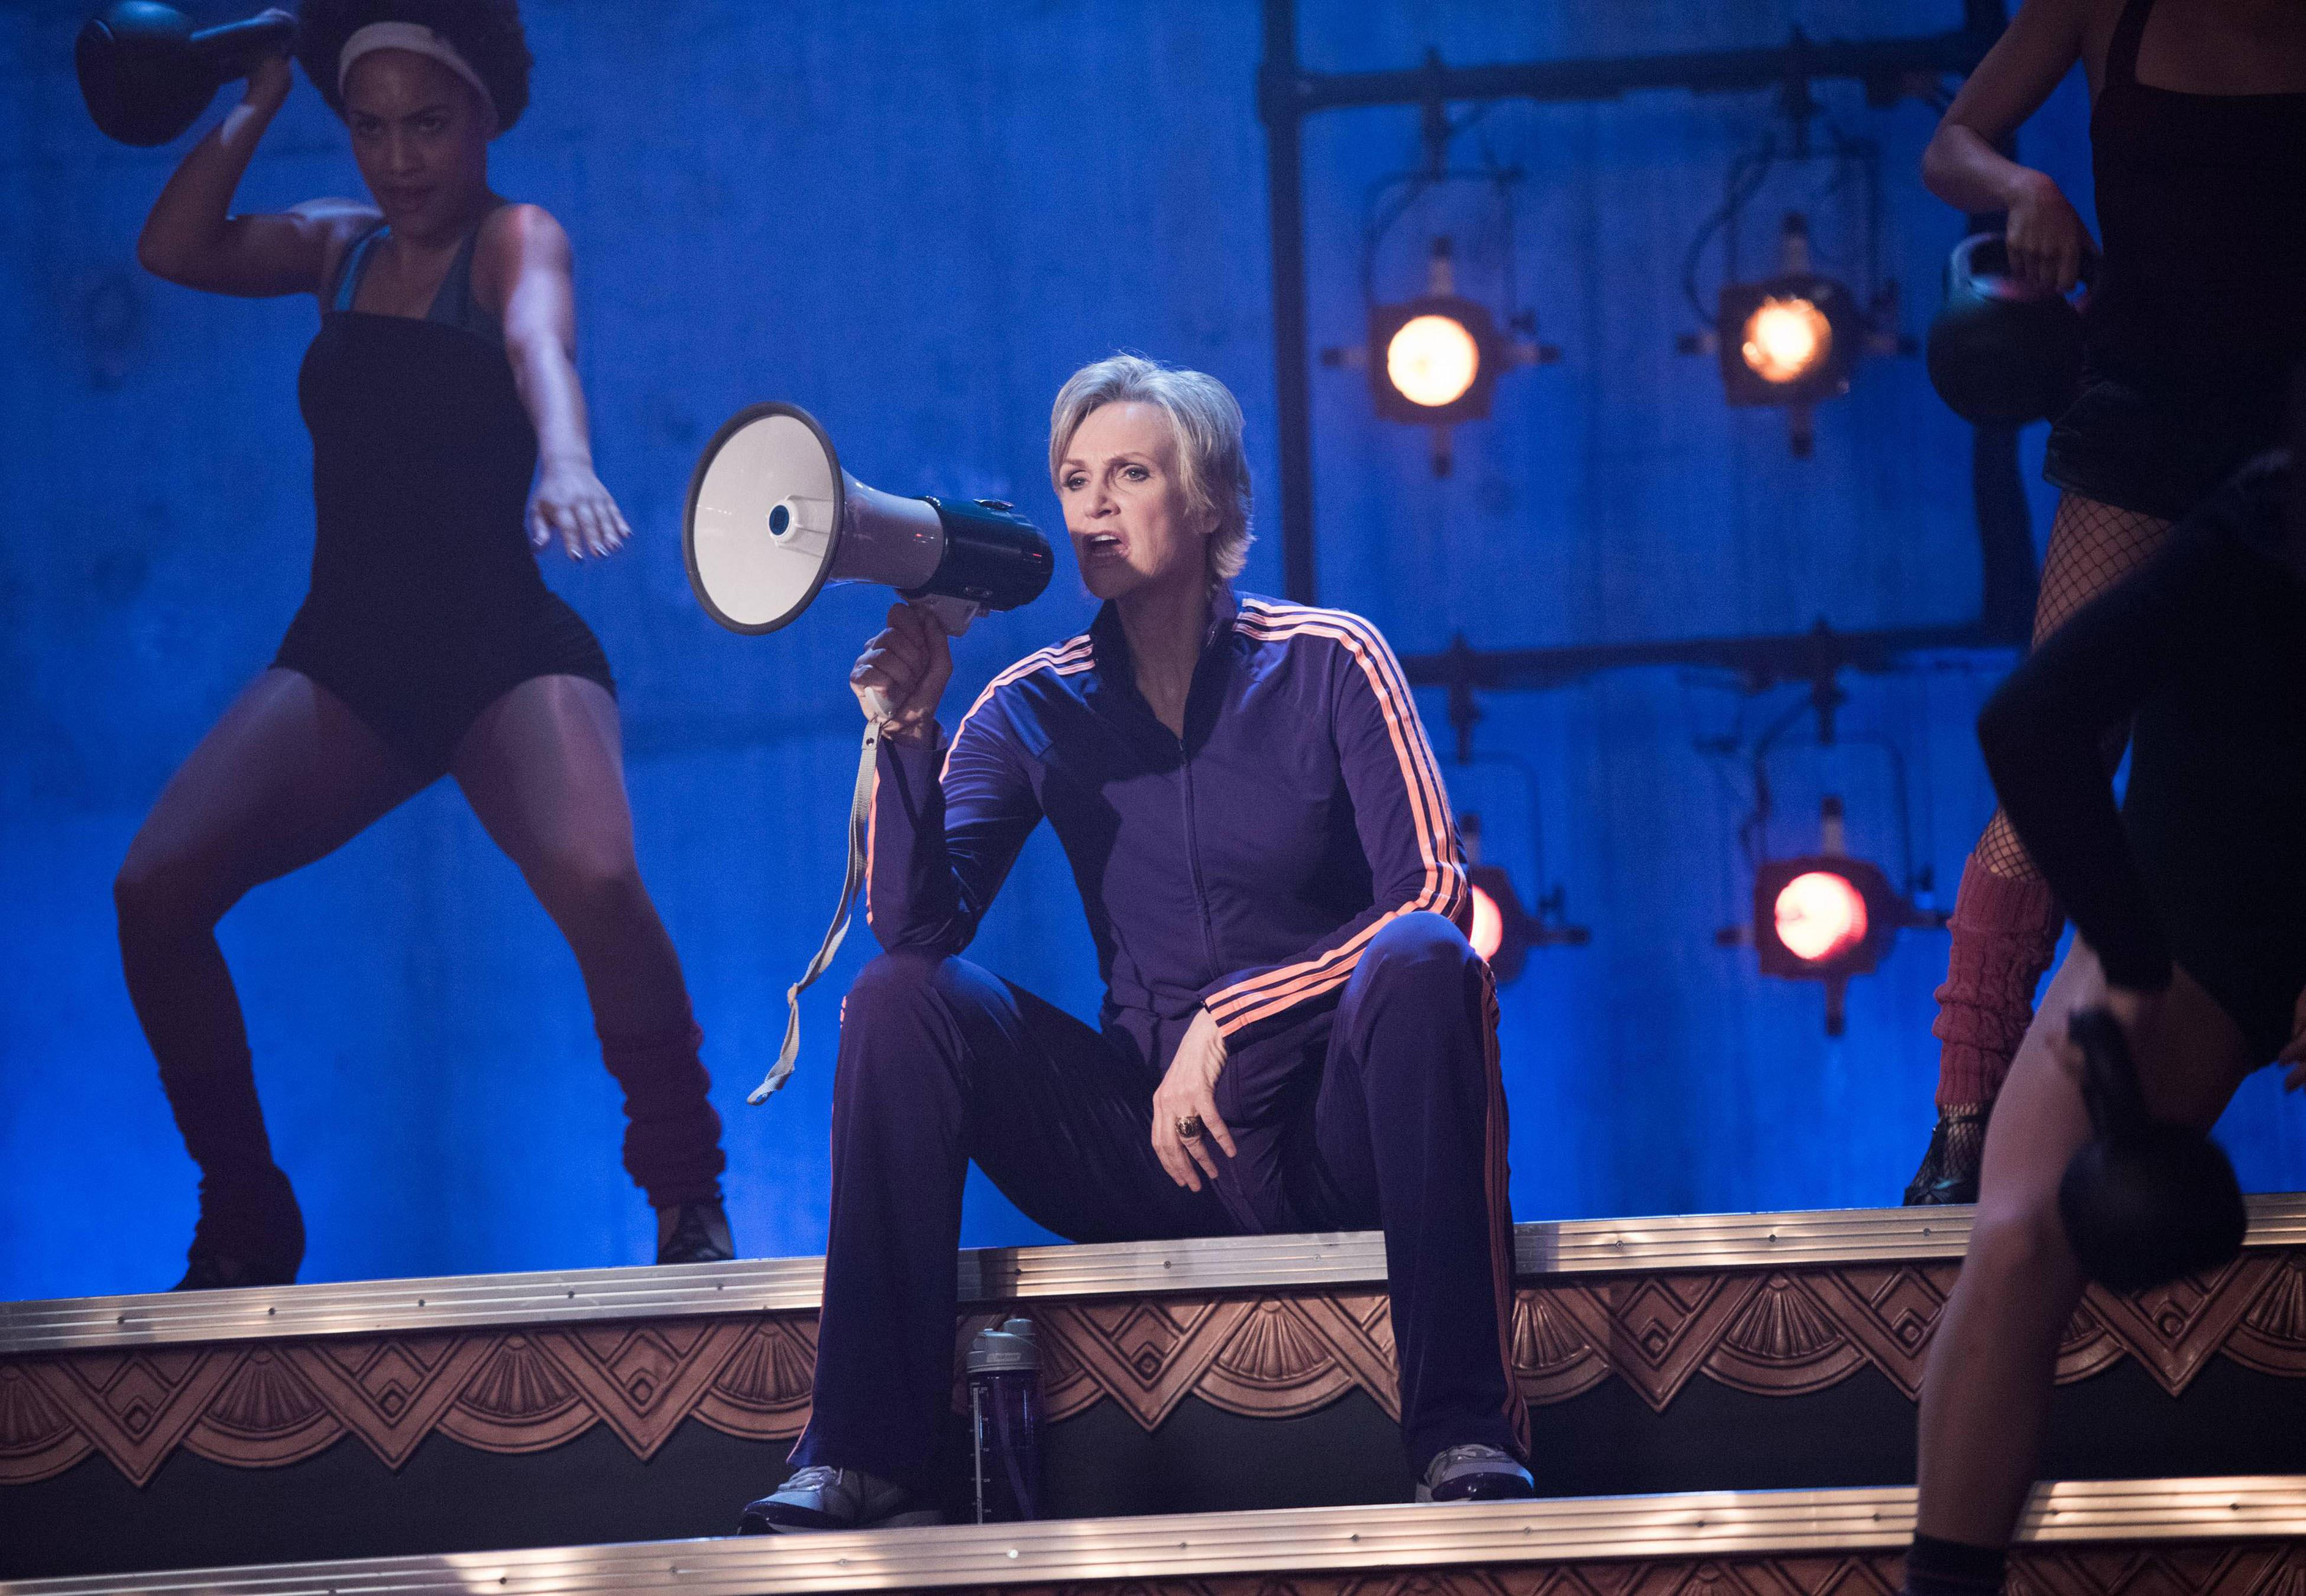 Sue Sylvester (Jane Lynch) played the fearsome cheerleading coach in Glee. In the series finale, she's revealed to have become the Vice President in 2020. (Courtesy: Everett Collection)